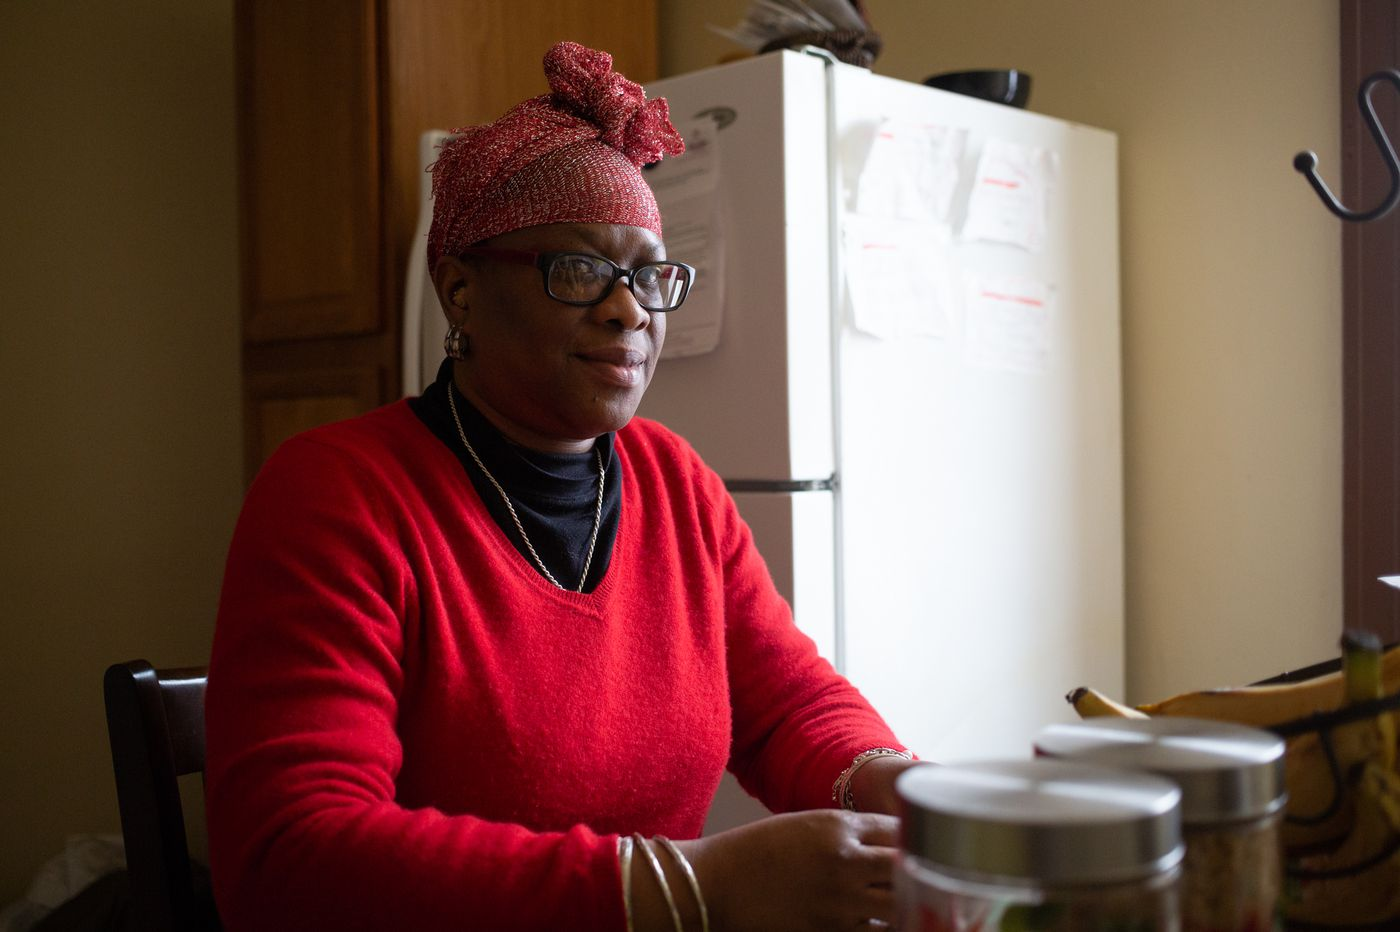 Philly could establish new protections for domestic workers like nannies and house cleaners